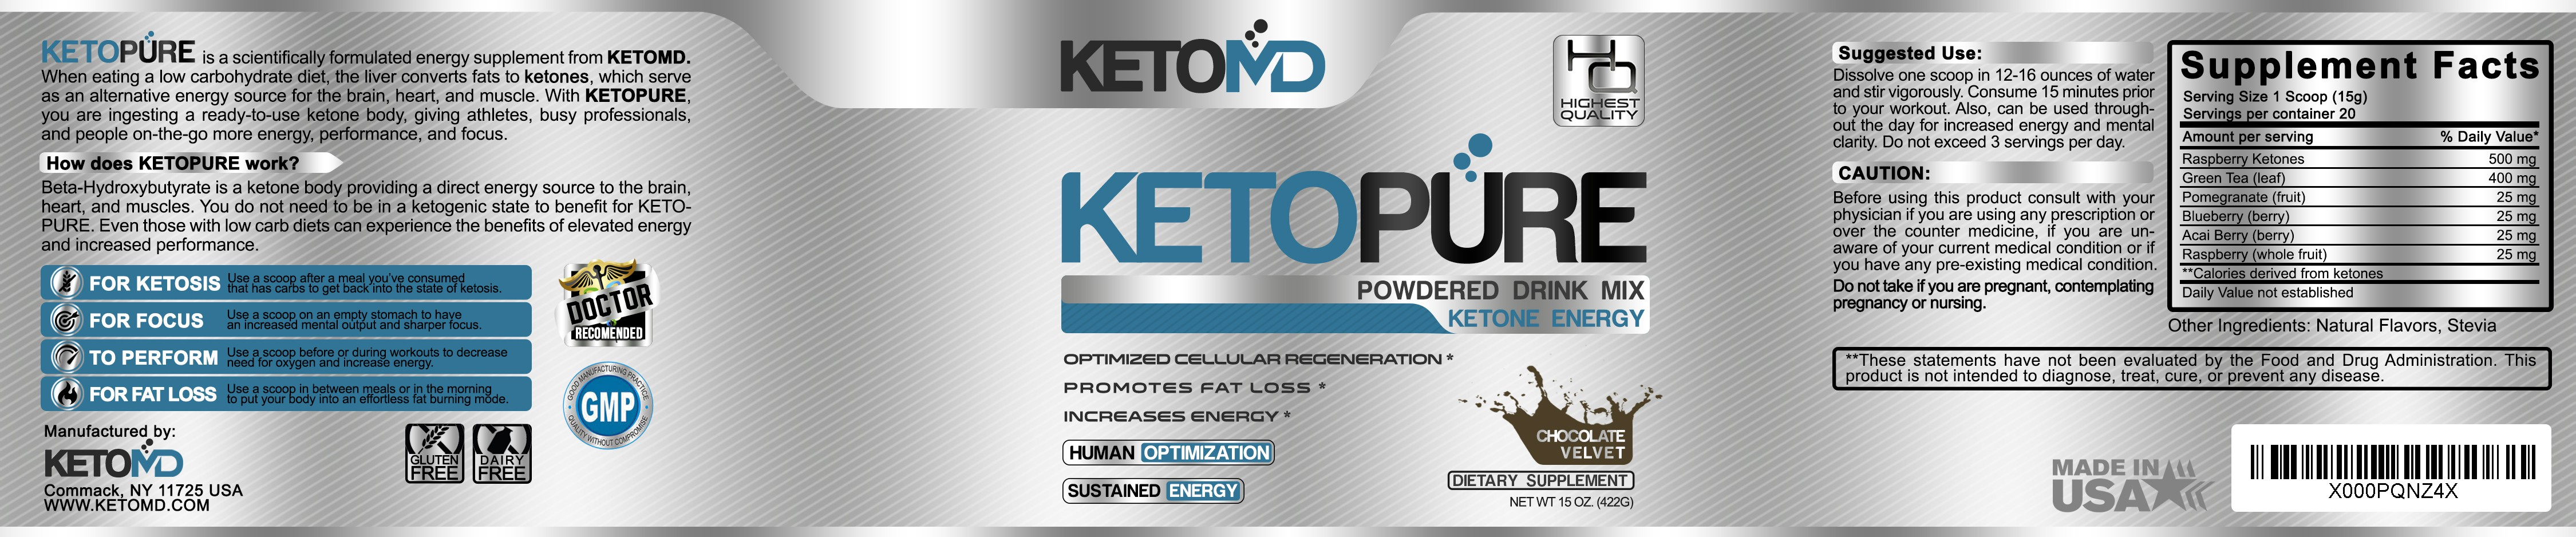 Create a Ketogenic Supplement logo and label design!!!